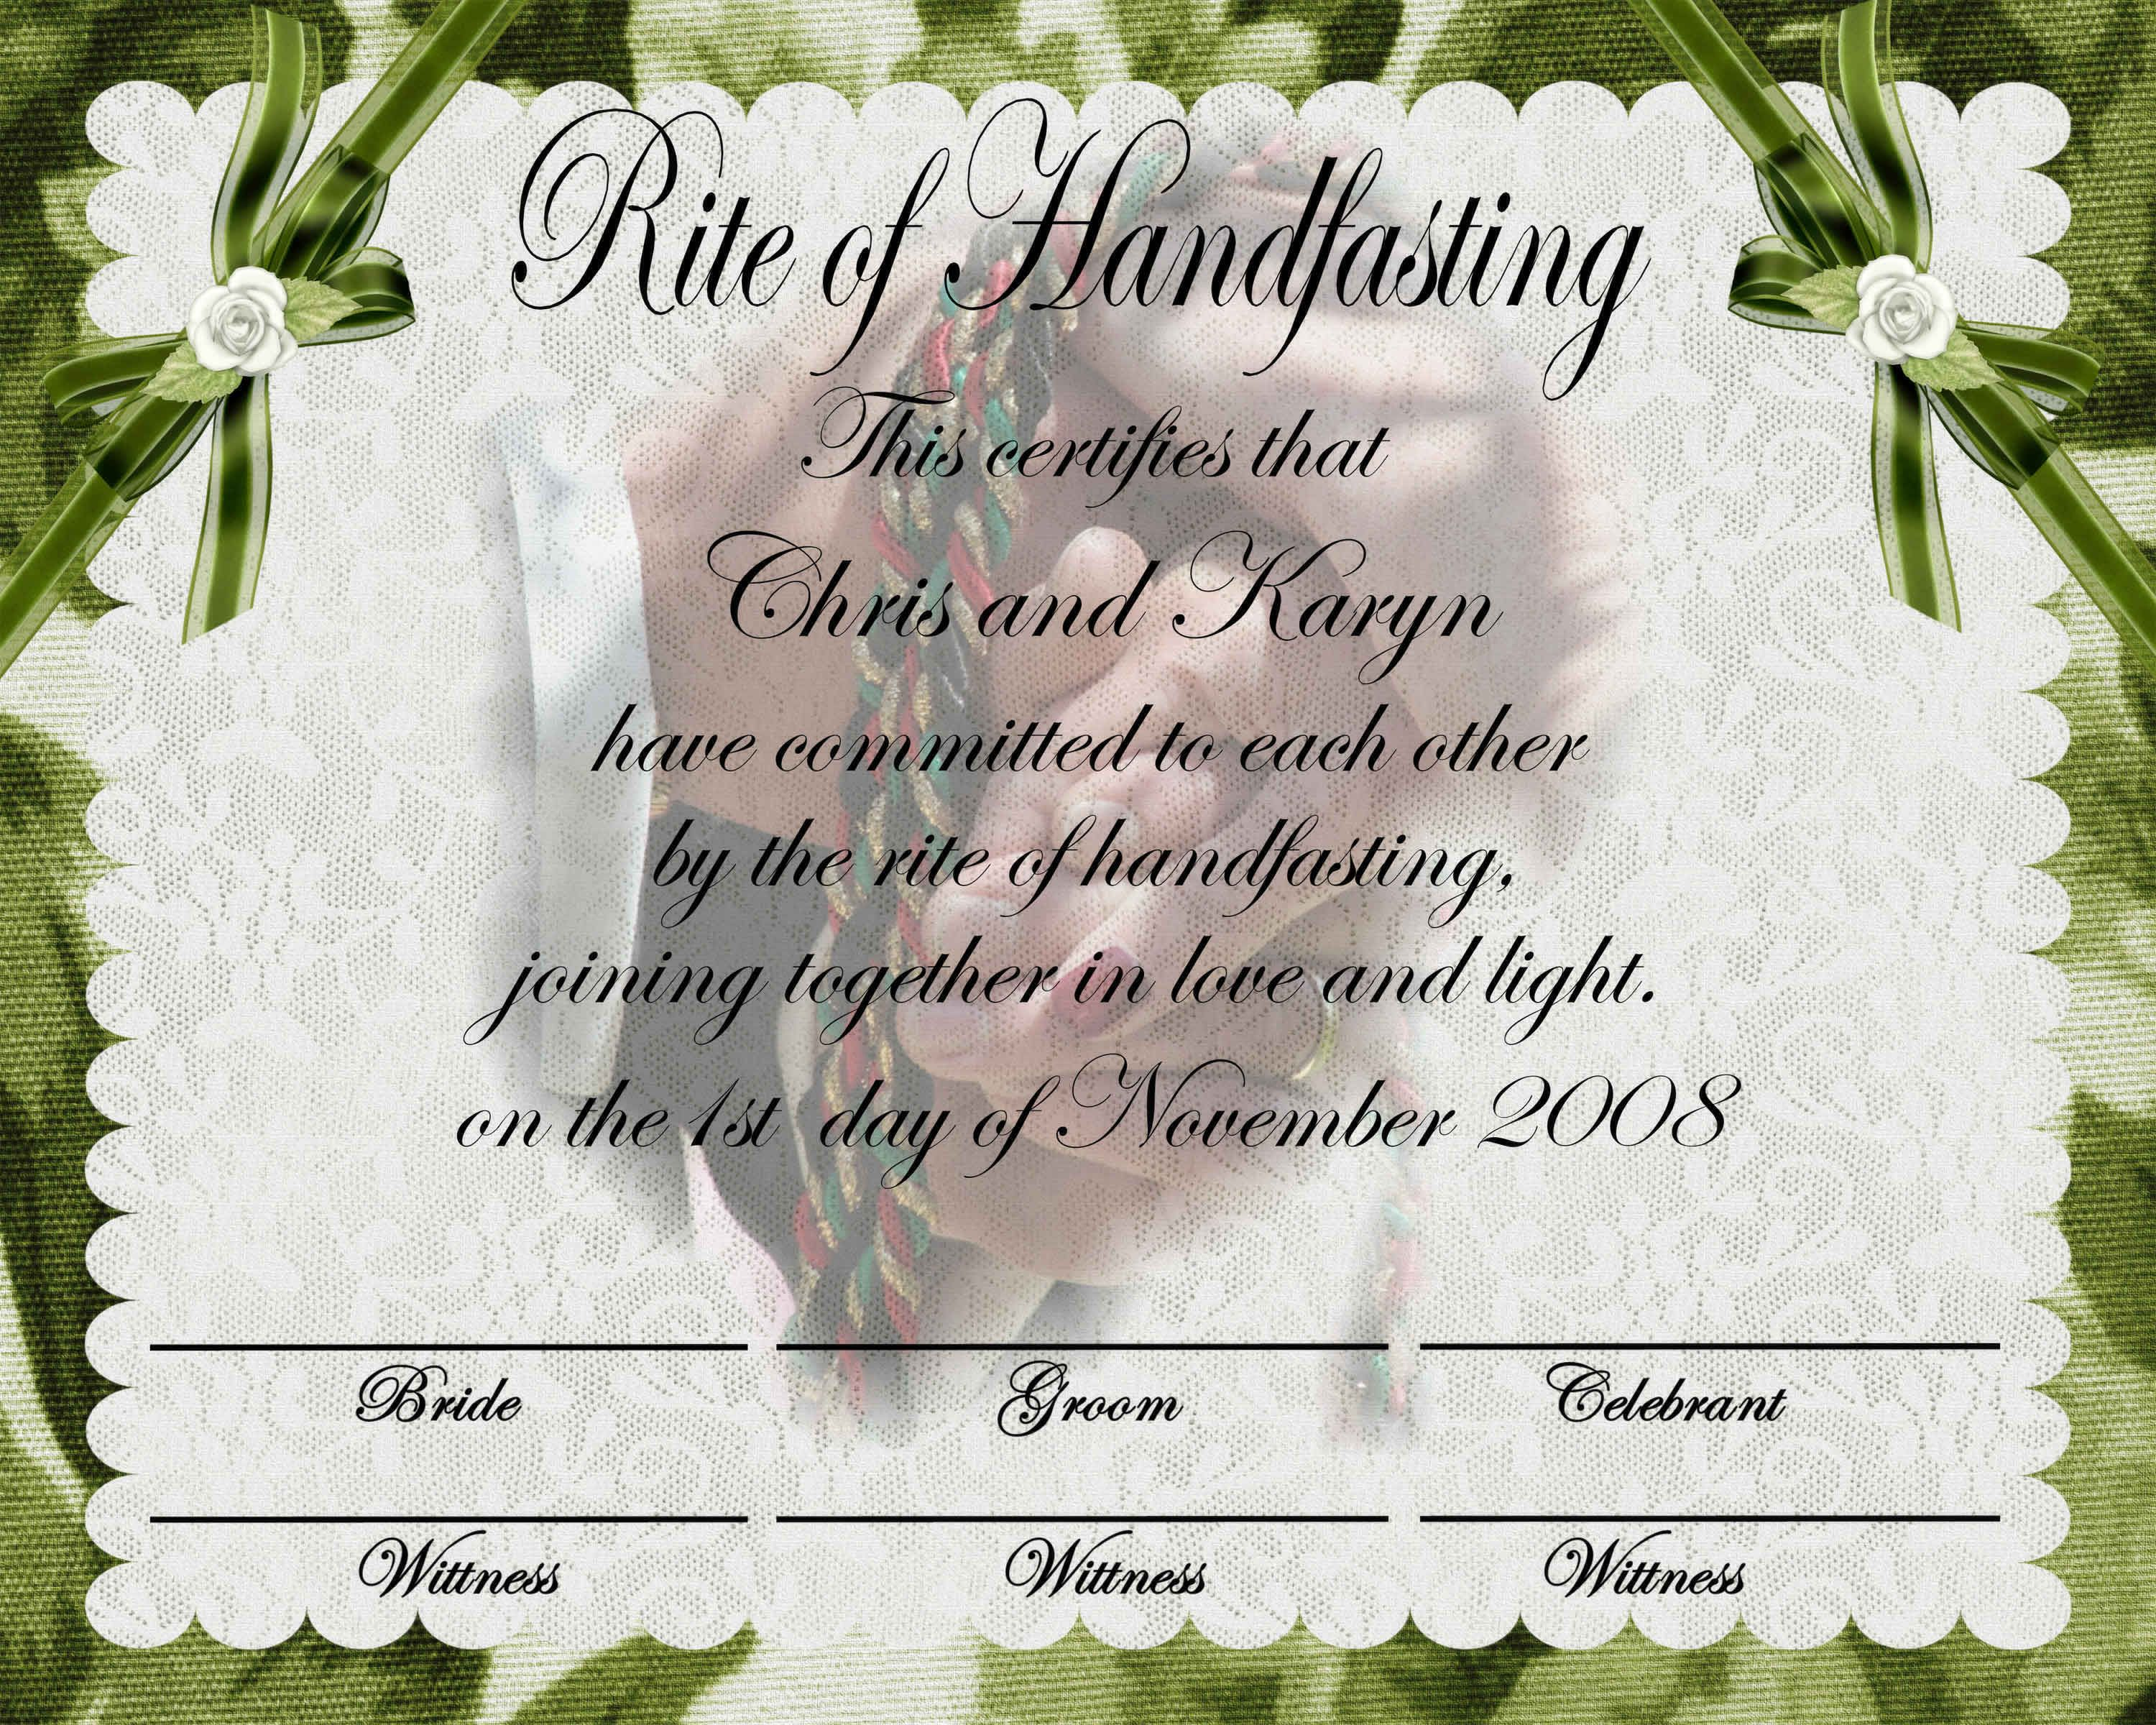 Handfasting Certificate Free - Favorite So Far